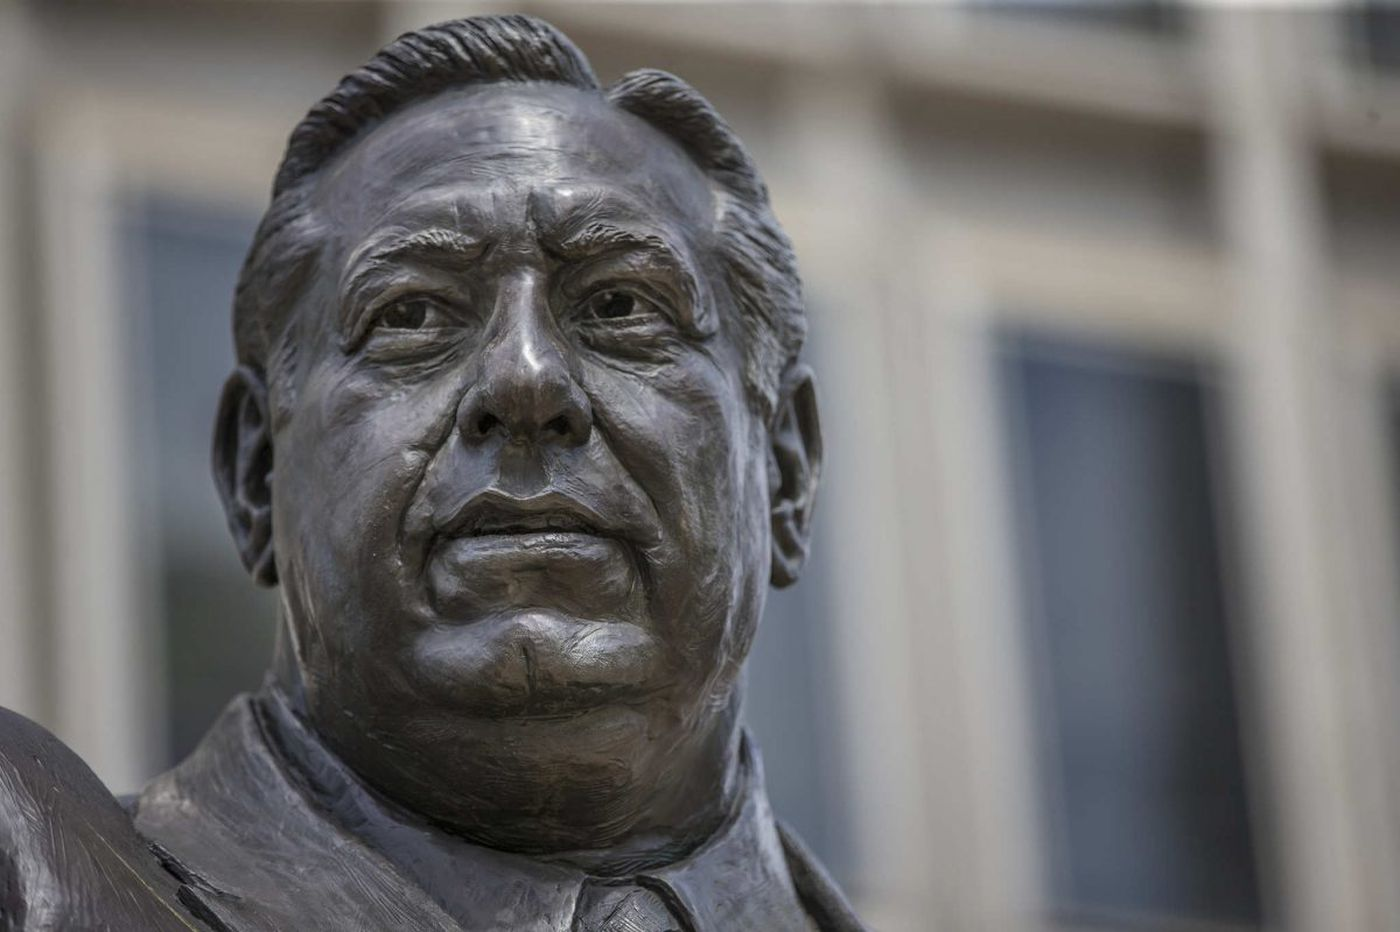 Rizzo statue to go, Kenney administration says